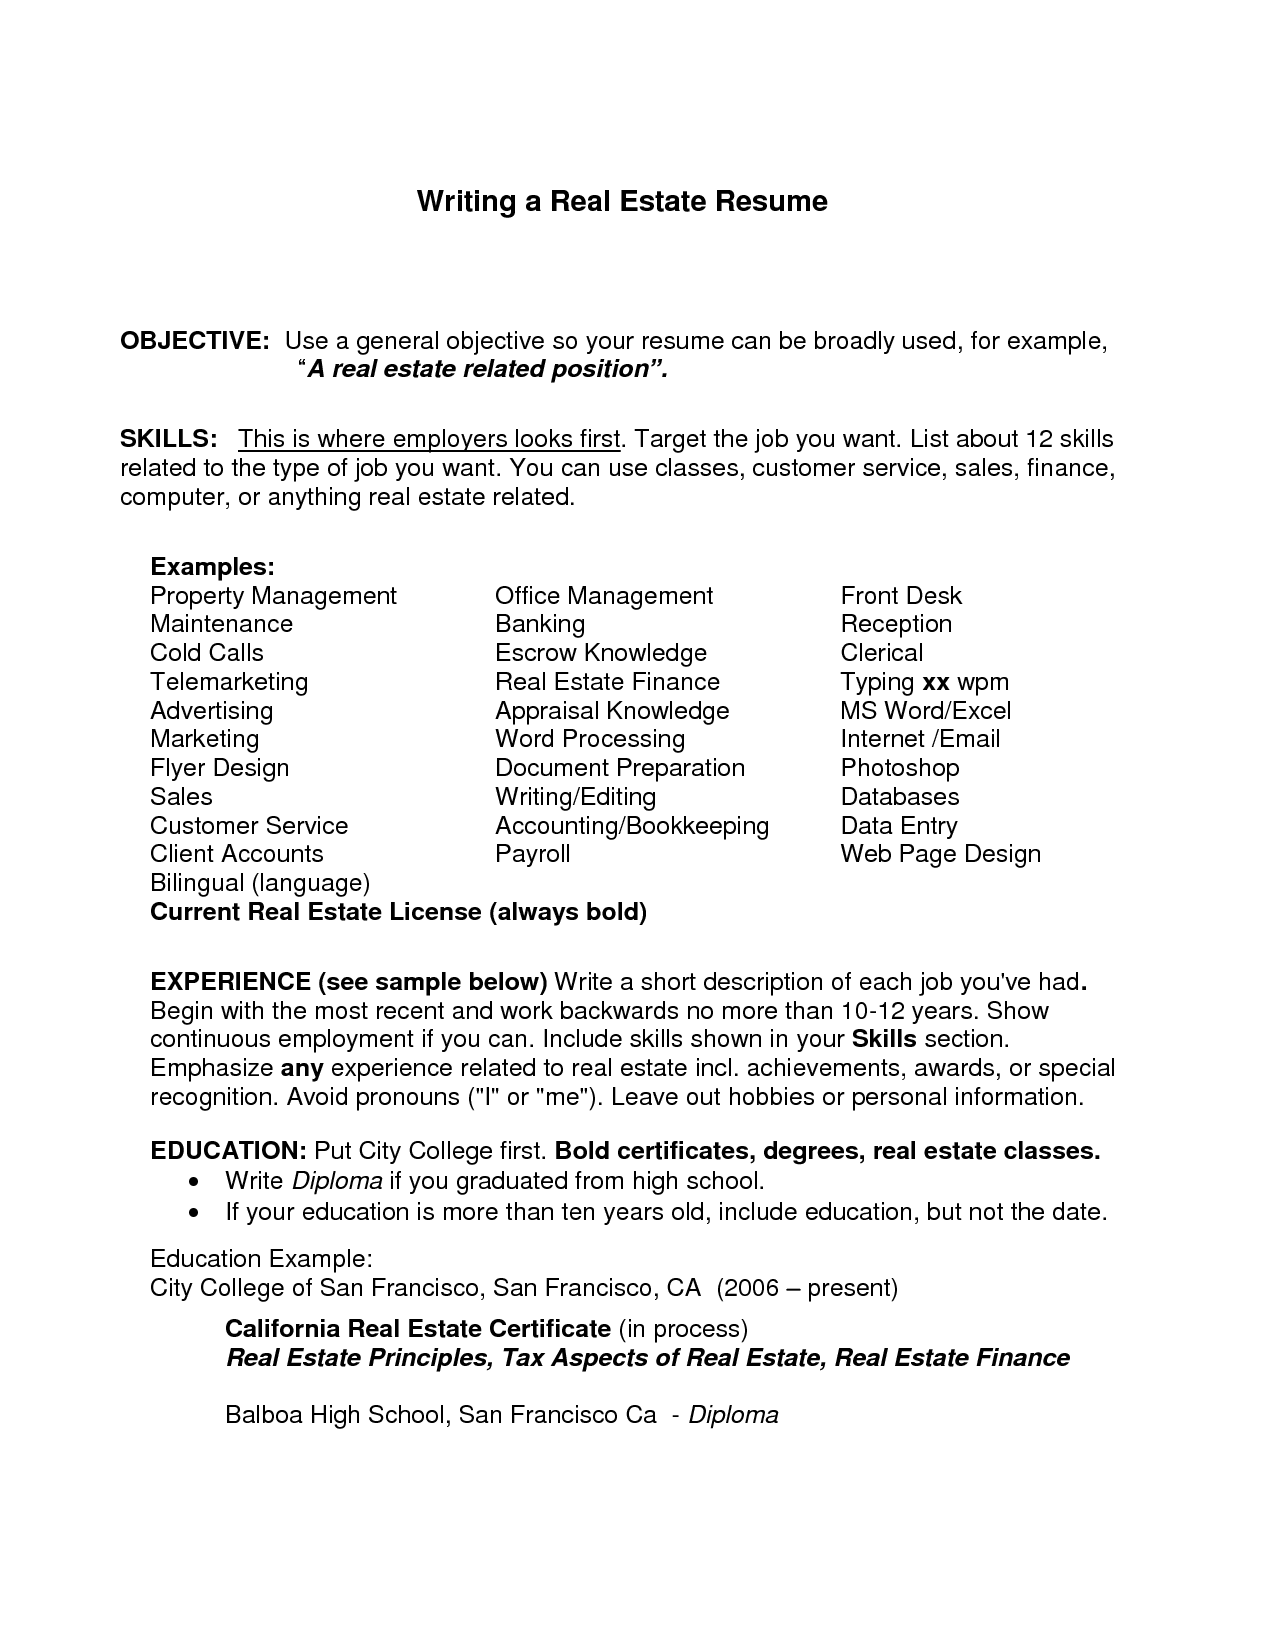 Writing An Objective For Resume General Resume Objective Examplesjob Resume Objective Examples